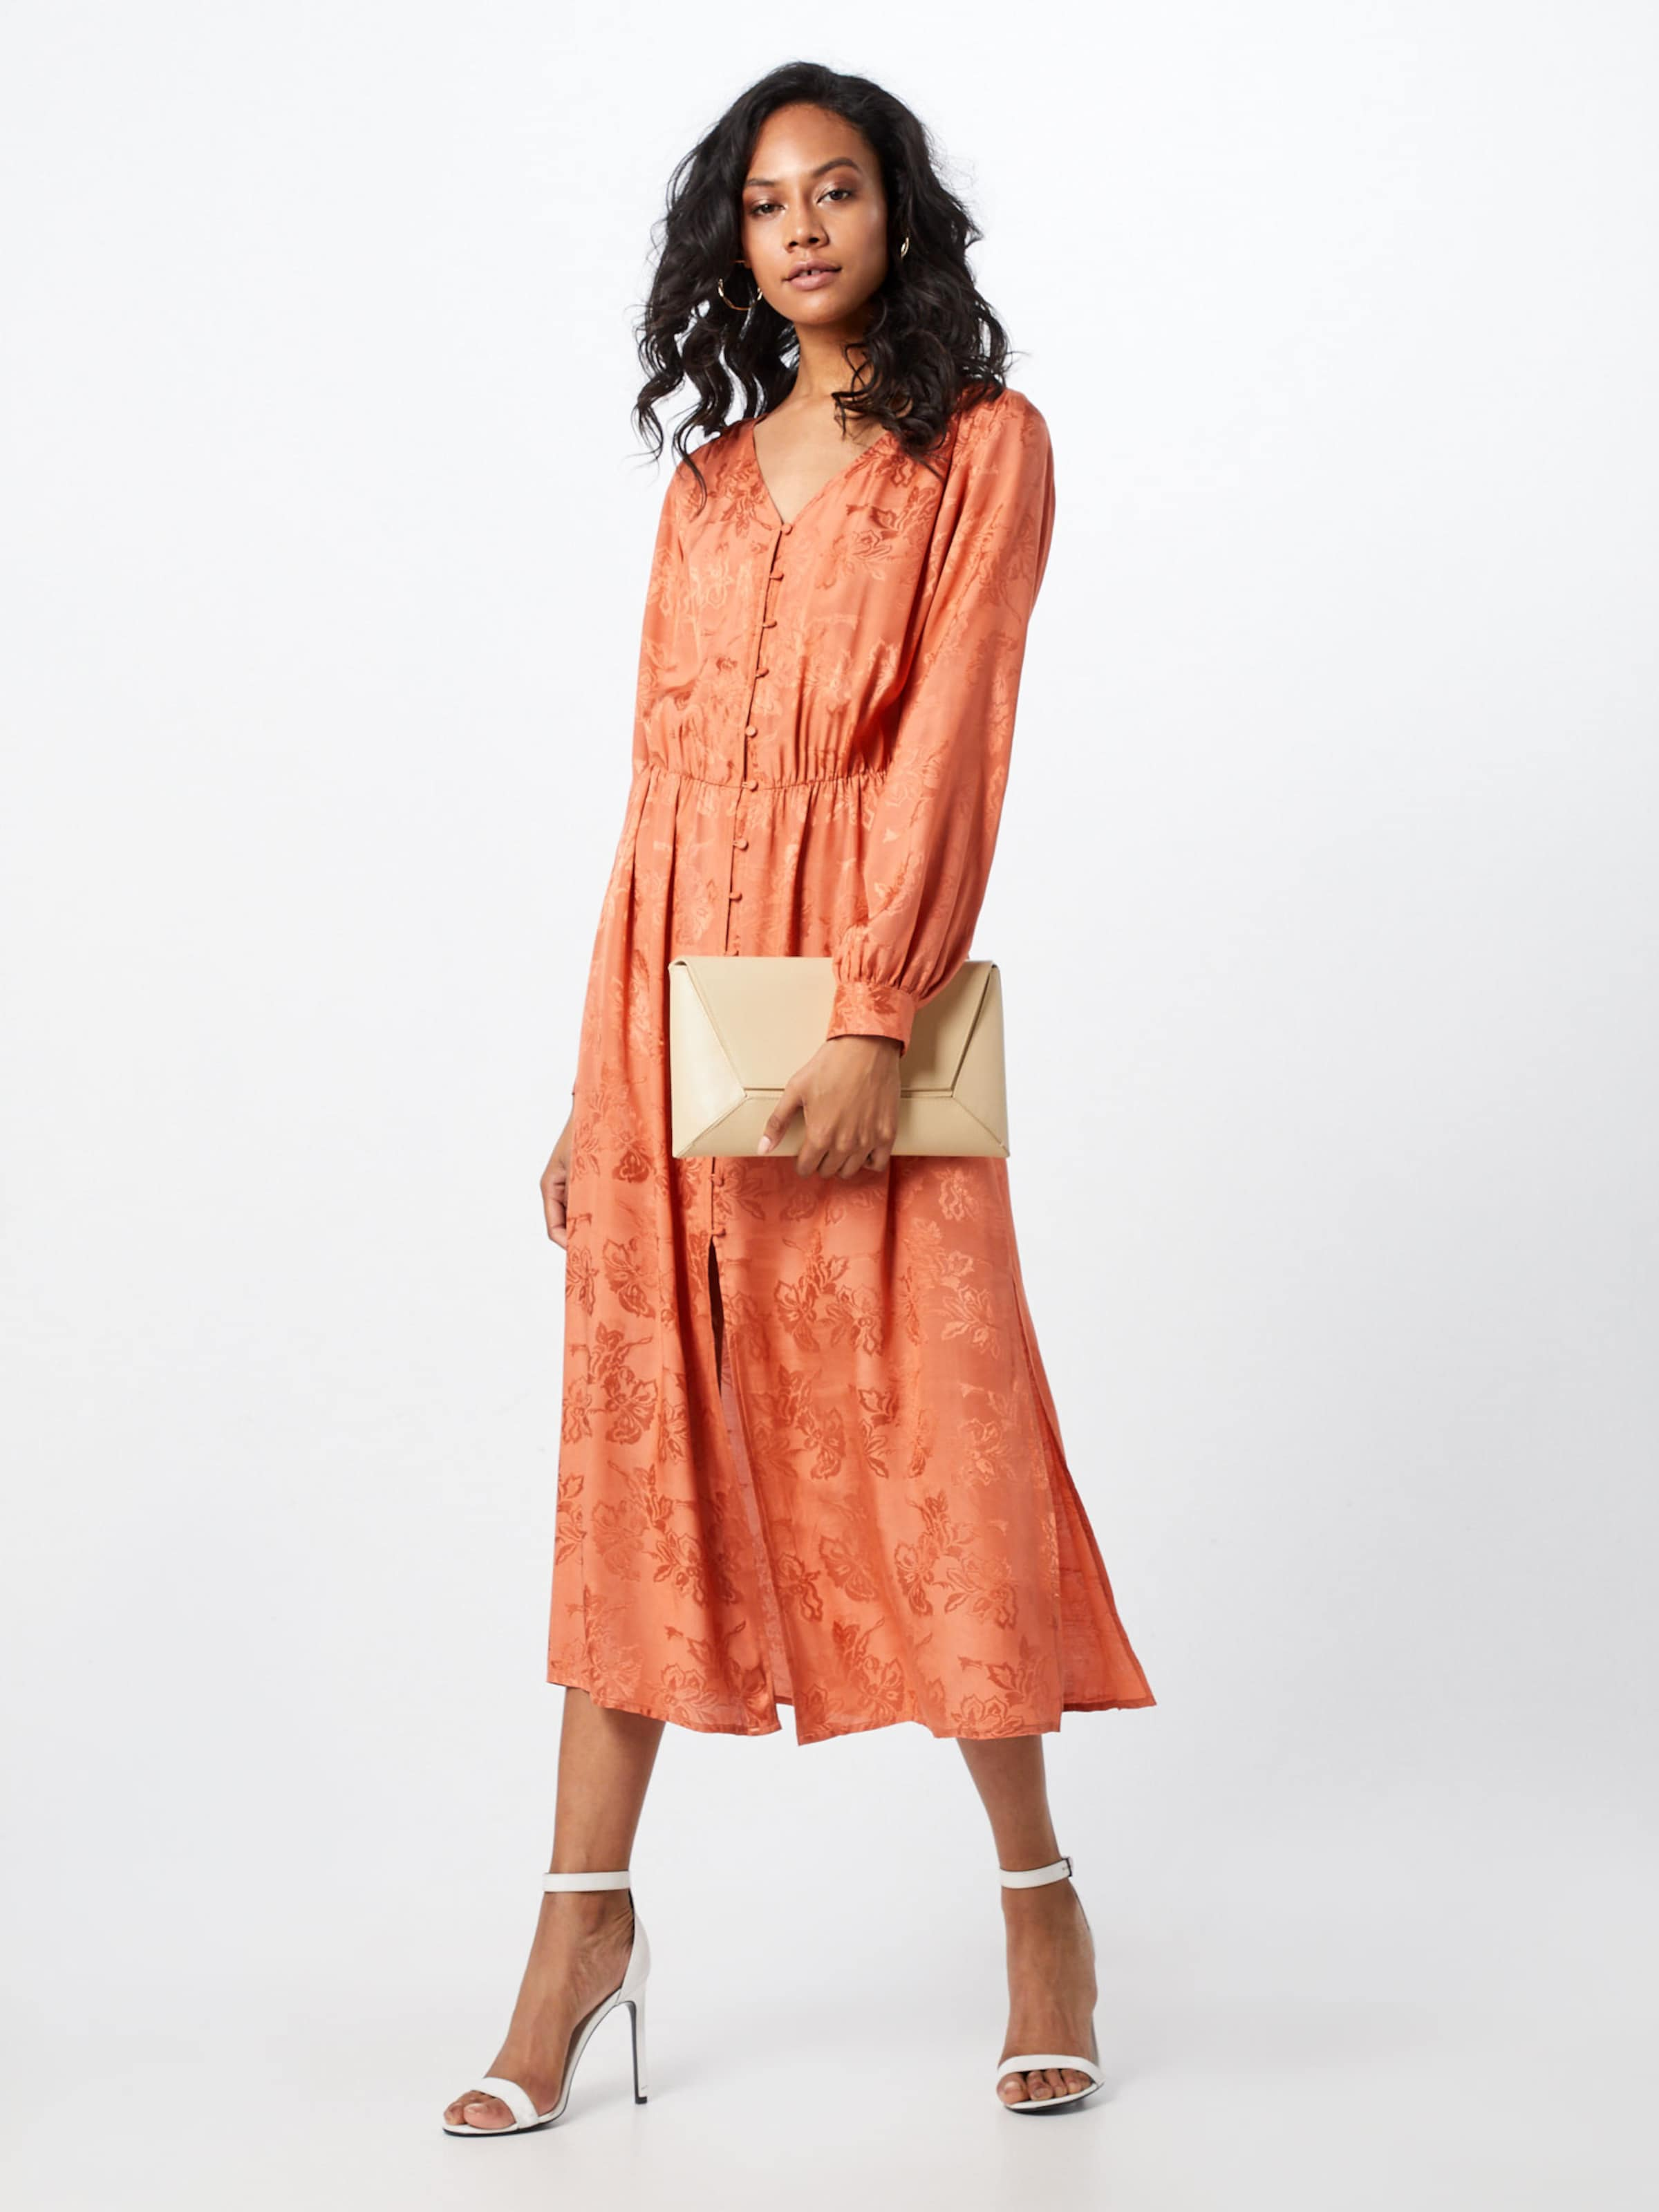 D'été Long En Orange 'tia Dress' Sparkz Robe pMVSqzU